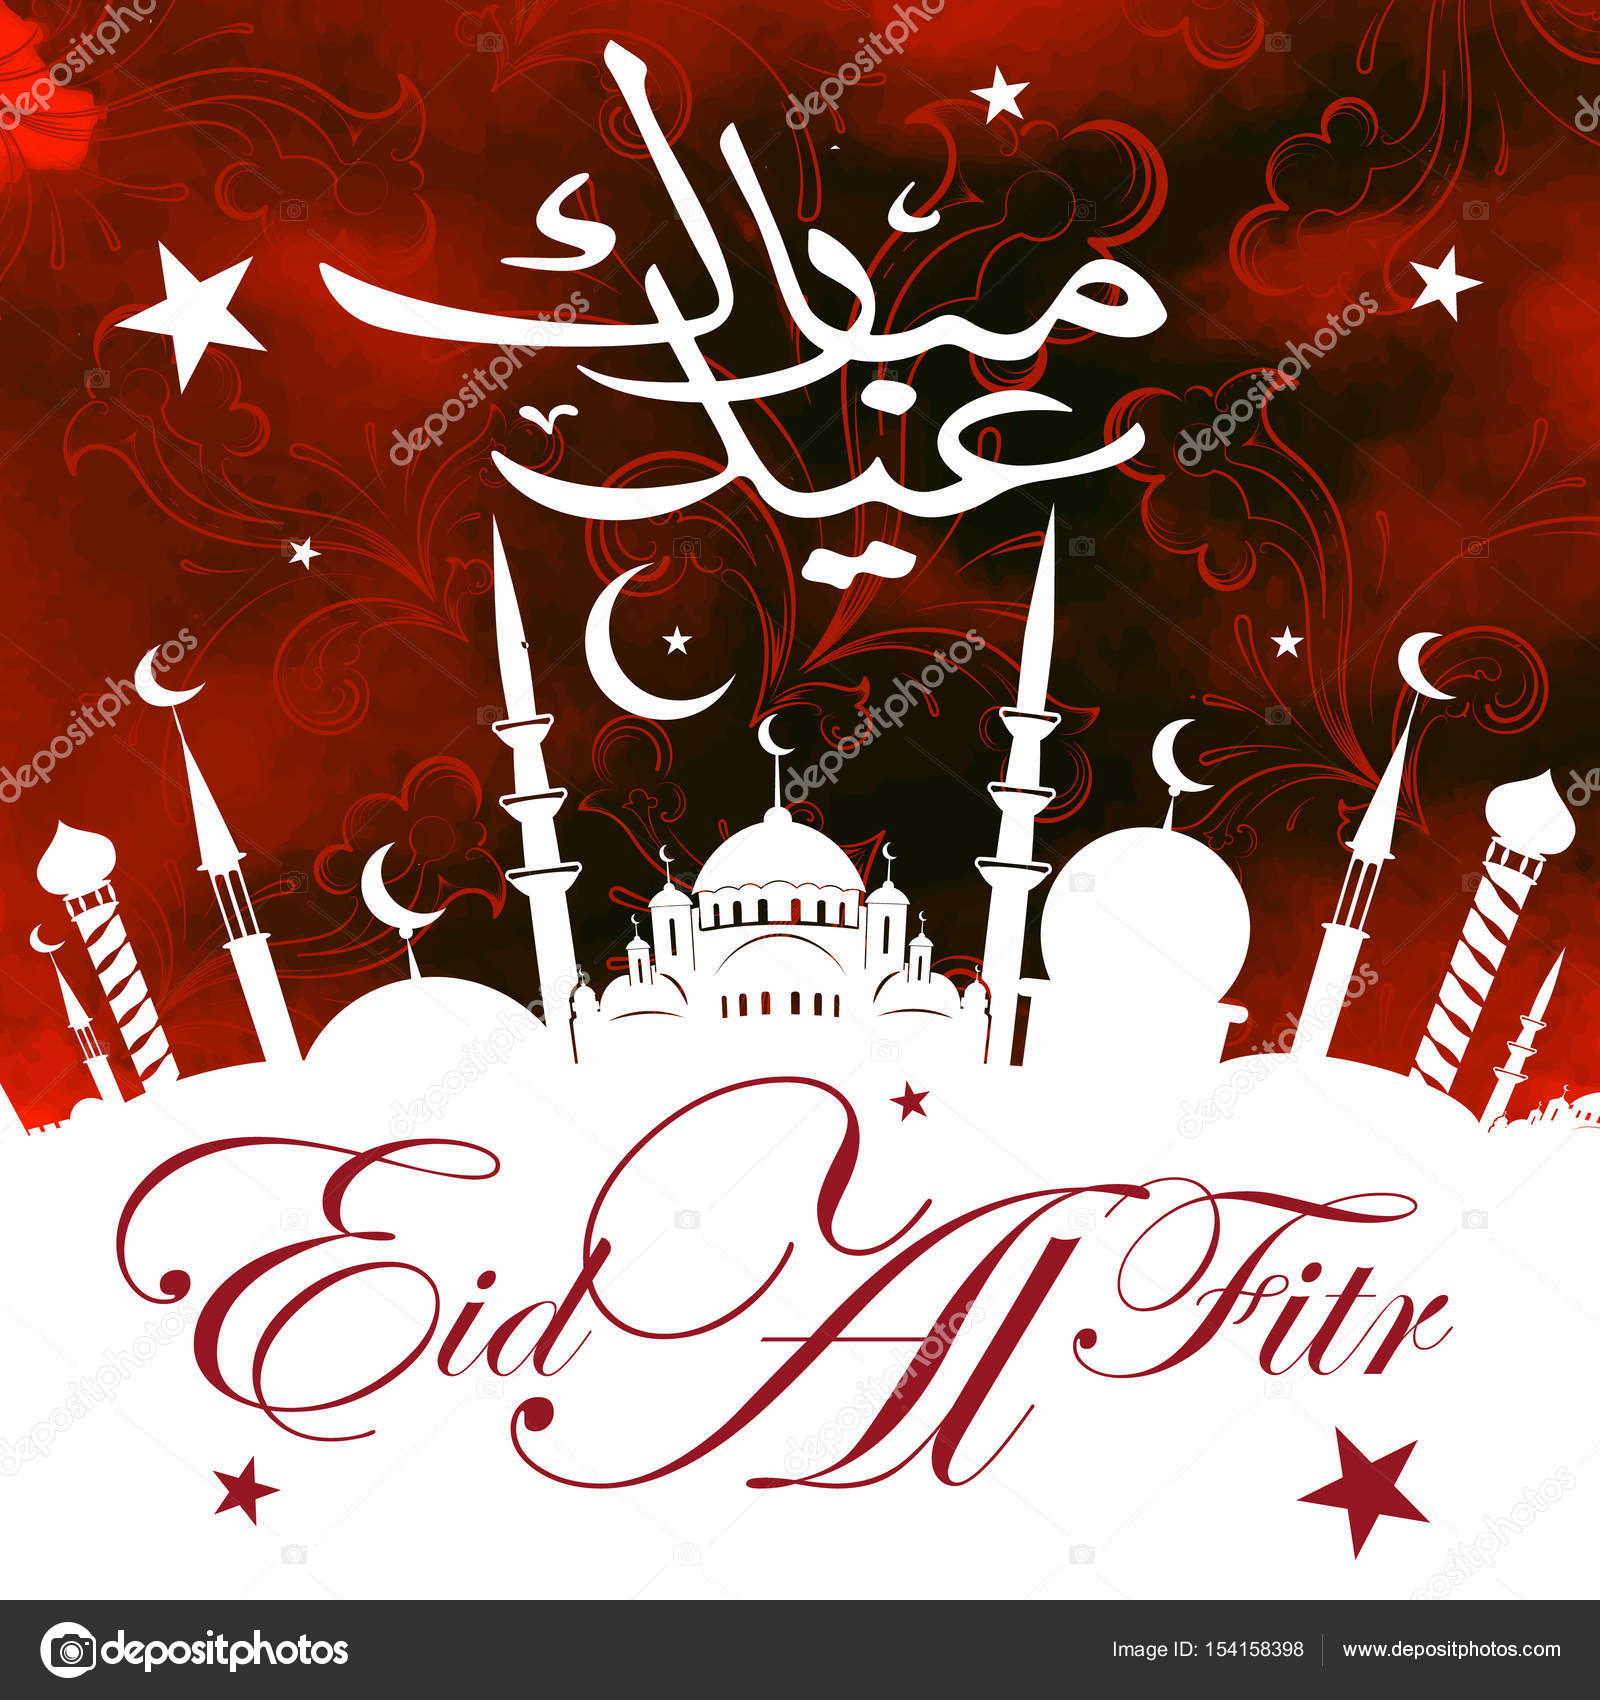 Eid al fitr greeting card stock photo vklim2011 154158398 calligraphy of arabic text eid al fitr feast of breaking the fast holiday greeting card in retro style text in arabic happy holiday kristyandbryce Choice Image